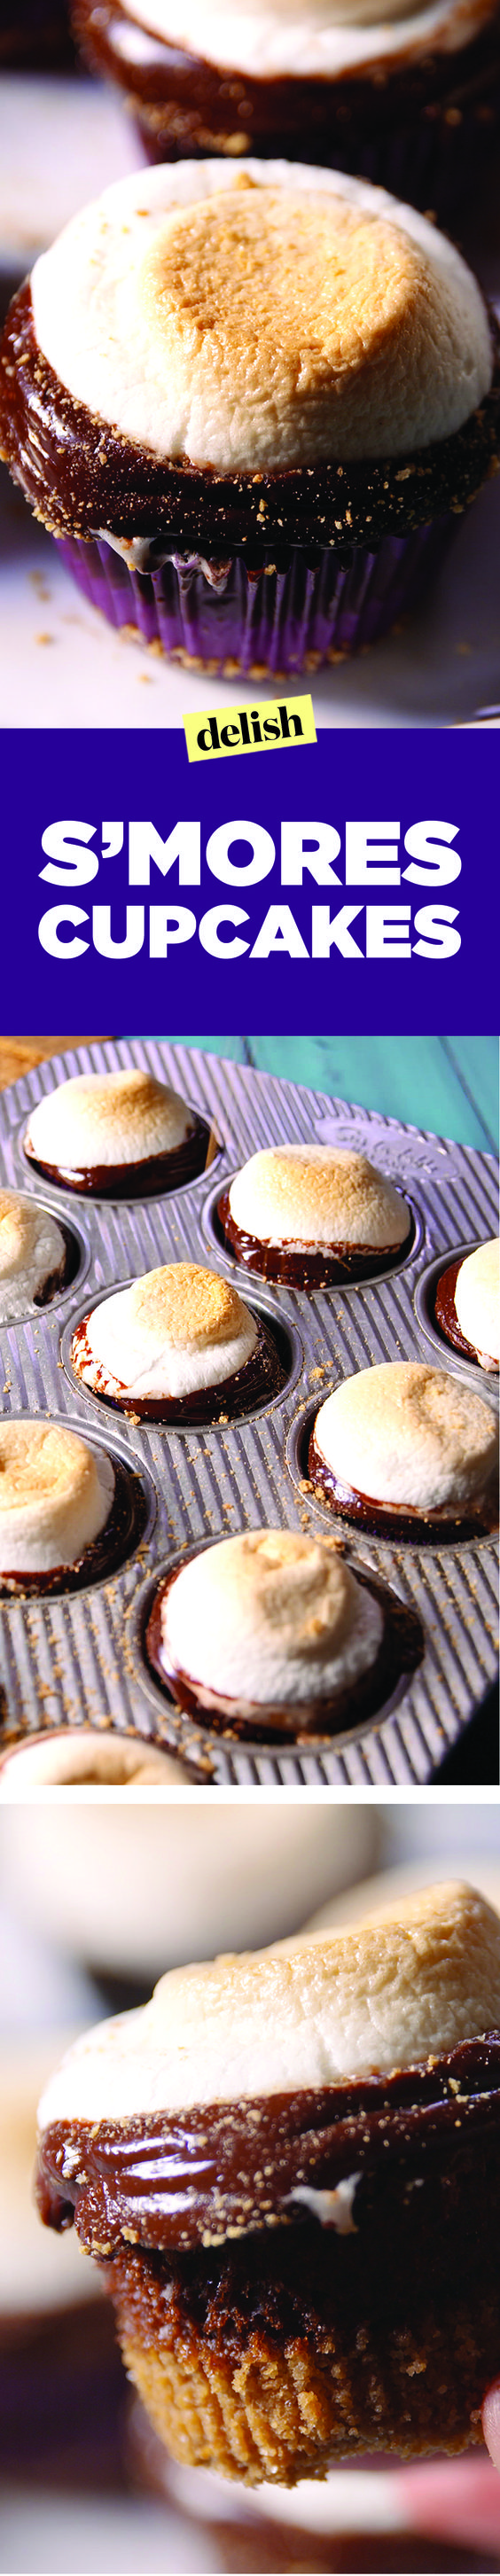 S'mores Cupcakes prove you don't need a campfire to get your s'mores fix. Get the recipe on Delish.com.